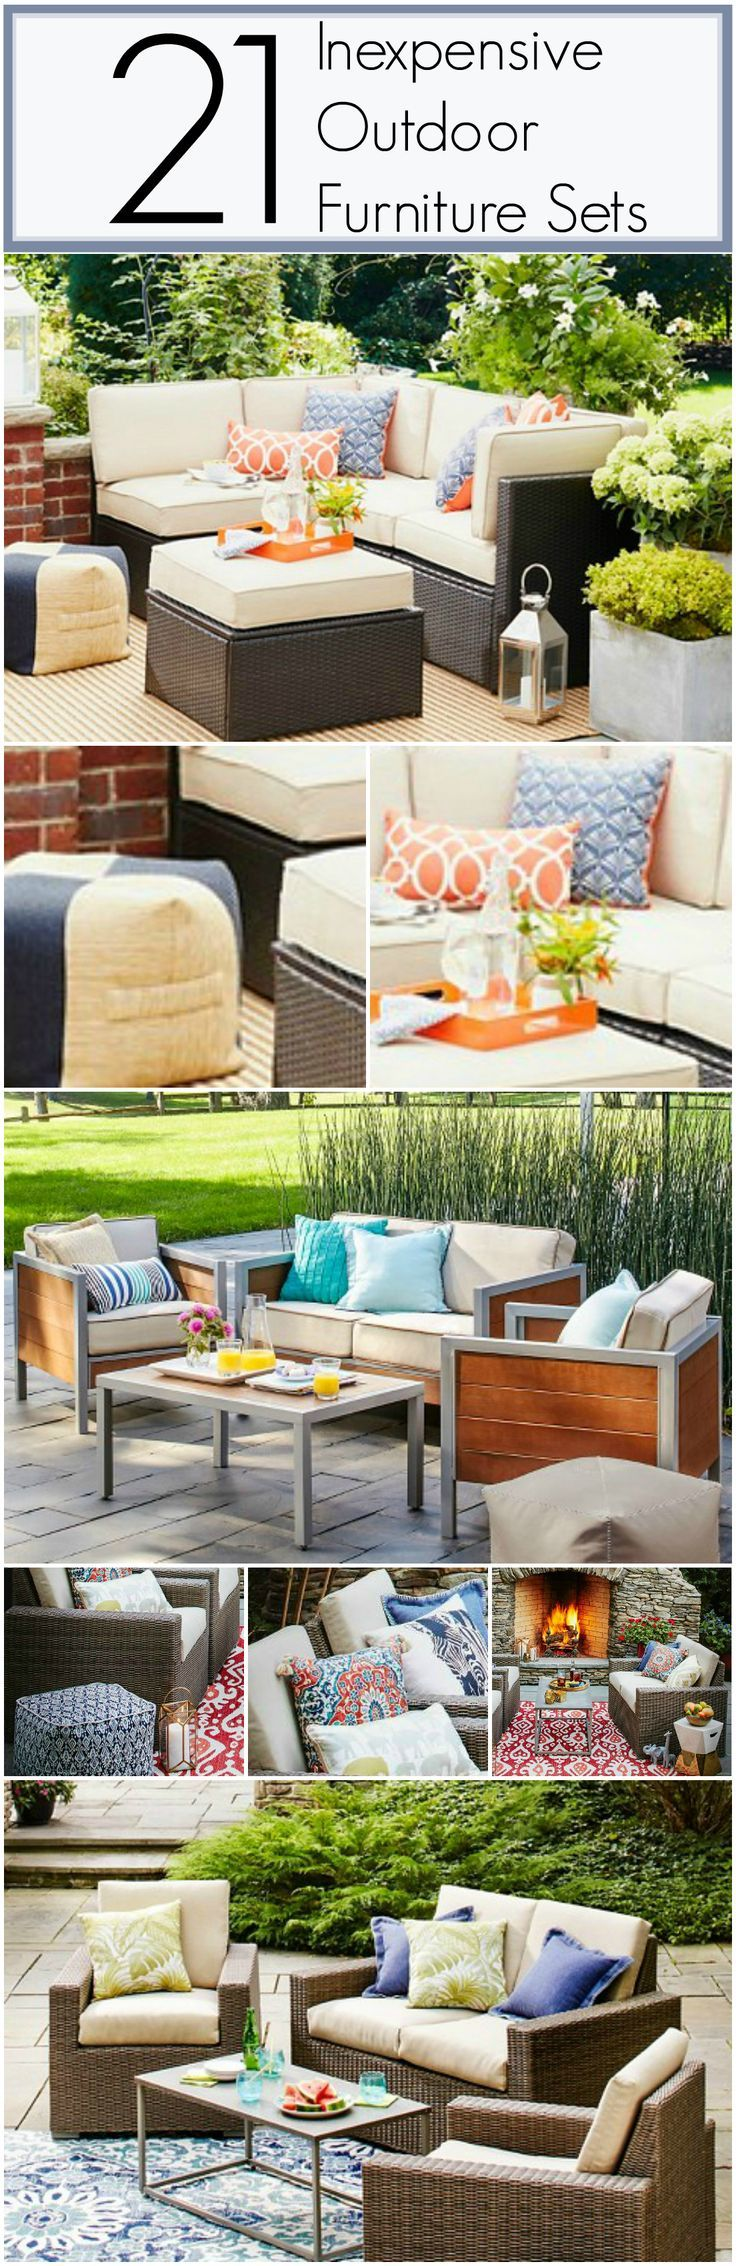 21 Inexpensive Outdoor Furniture Sets! Get An Entire Patio Set For Under  $900. Most